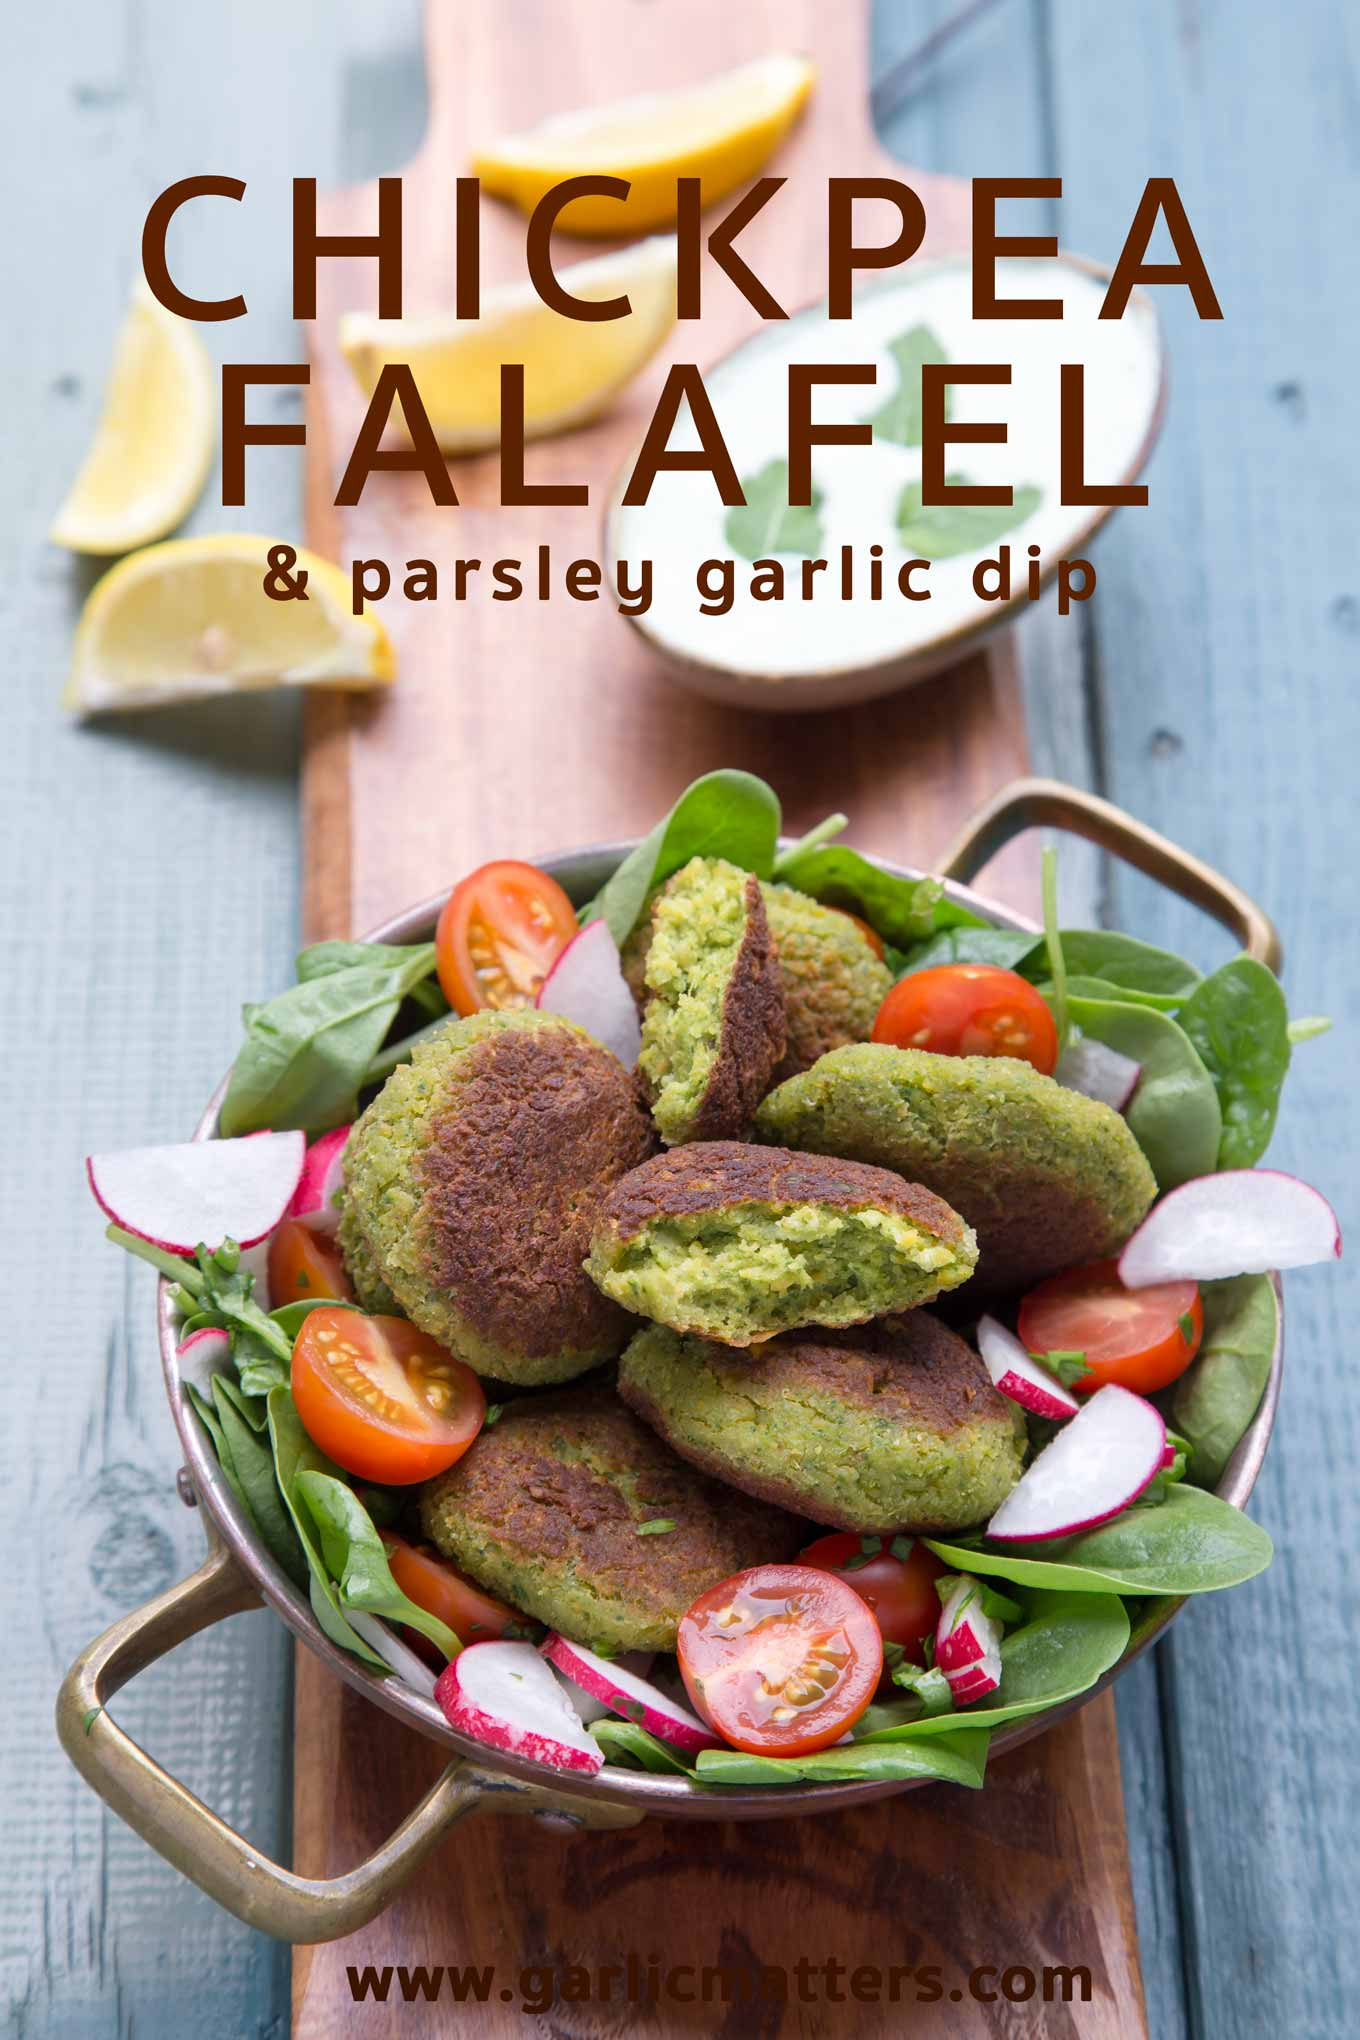 Delicious, vegetarian Middle Eastern falafel made with chickpeas, beautiful, fragrant spices and fresh herbs.